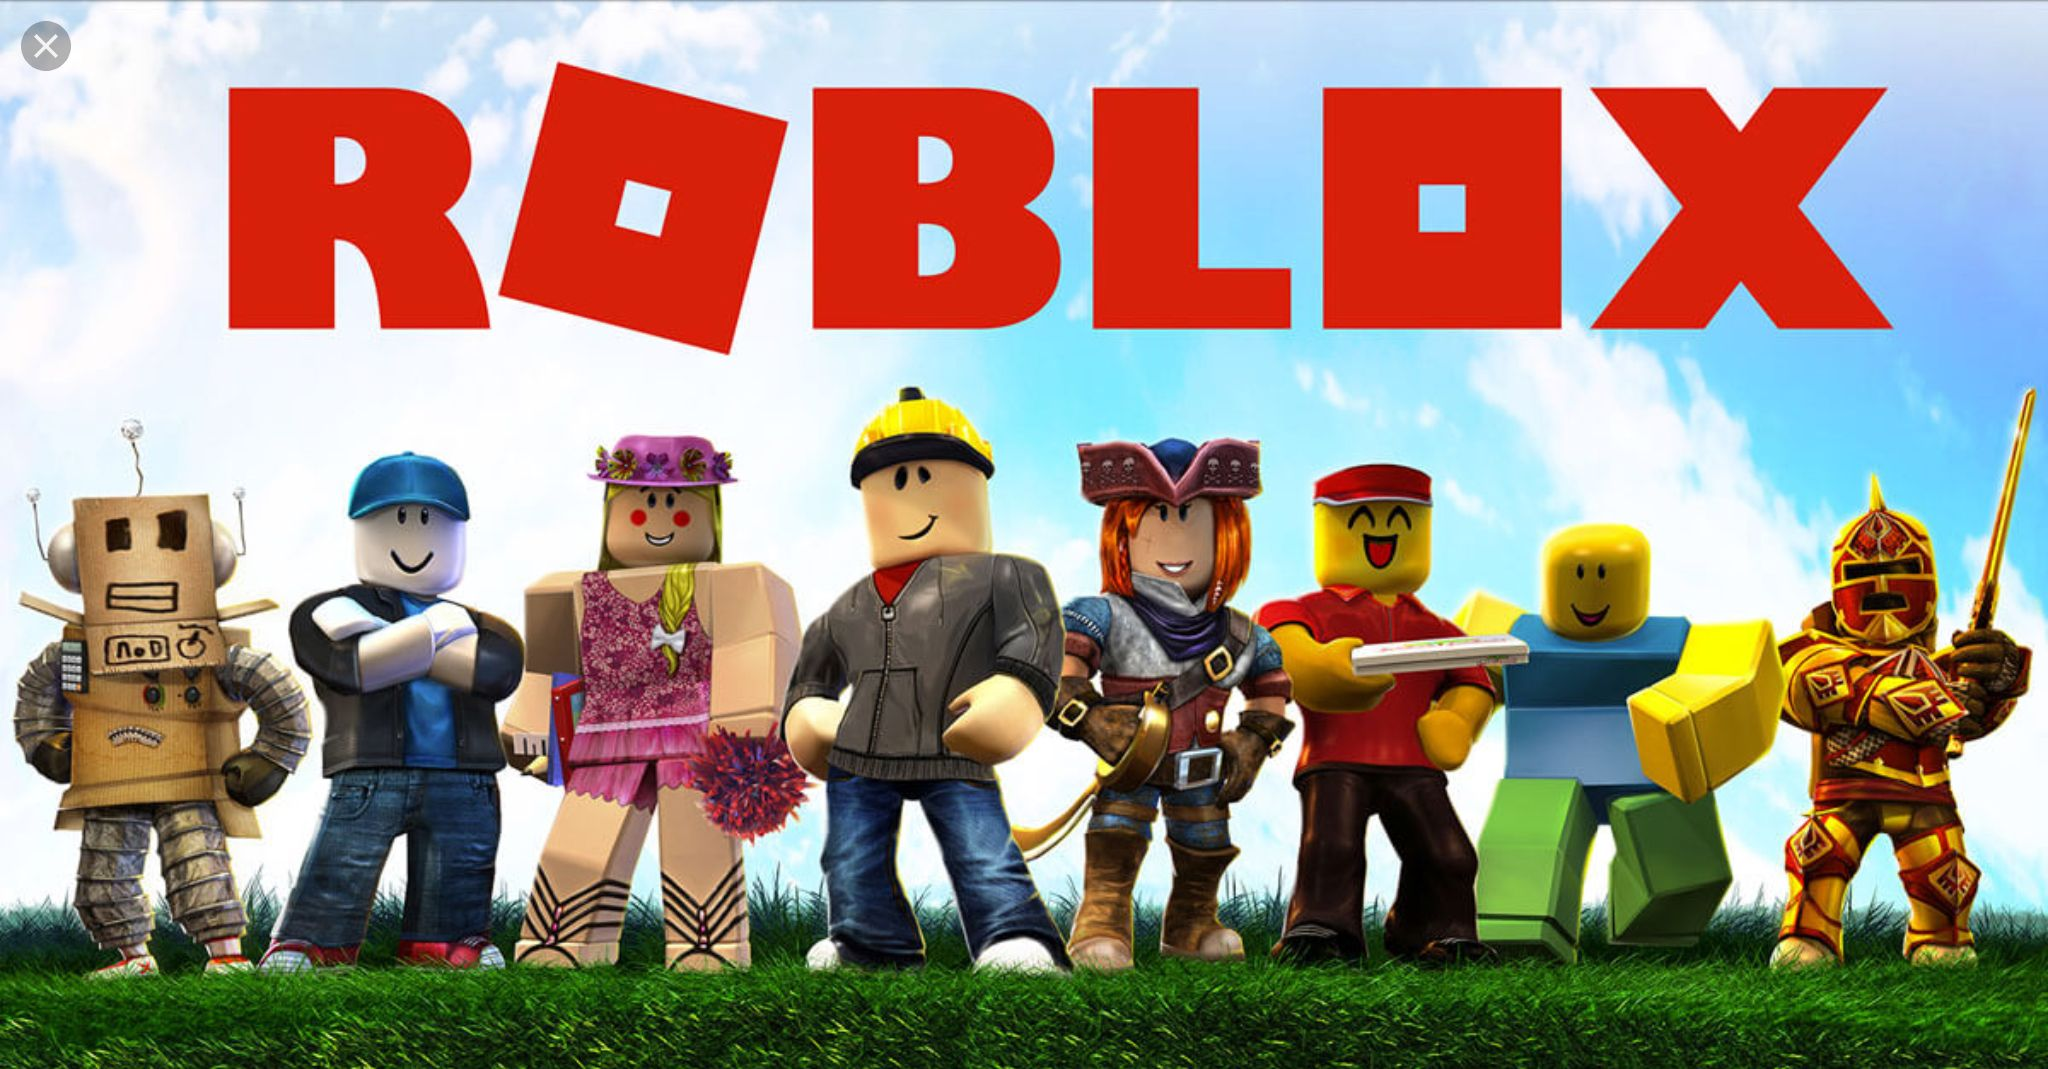 Roblox Wallpaper For Phones and Tablets